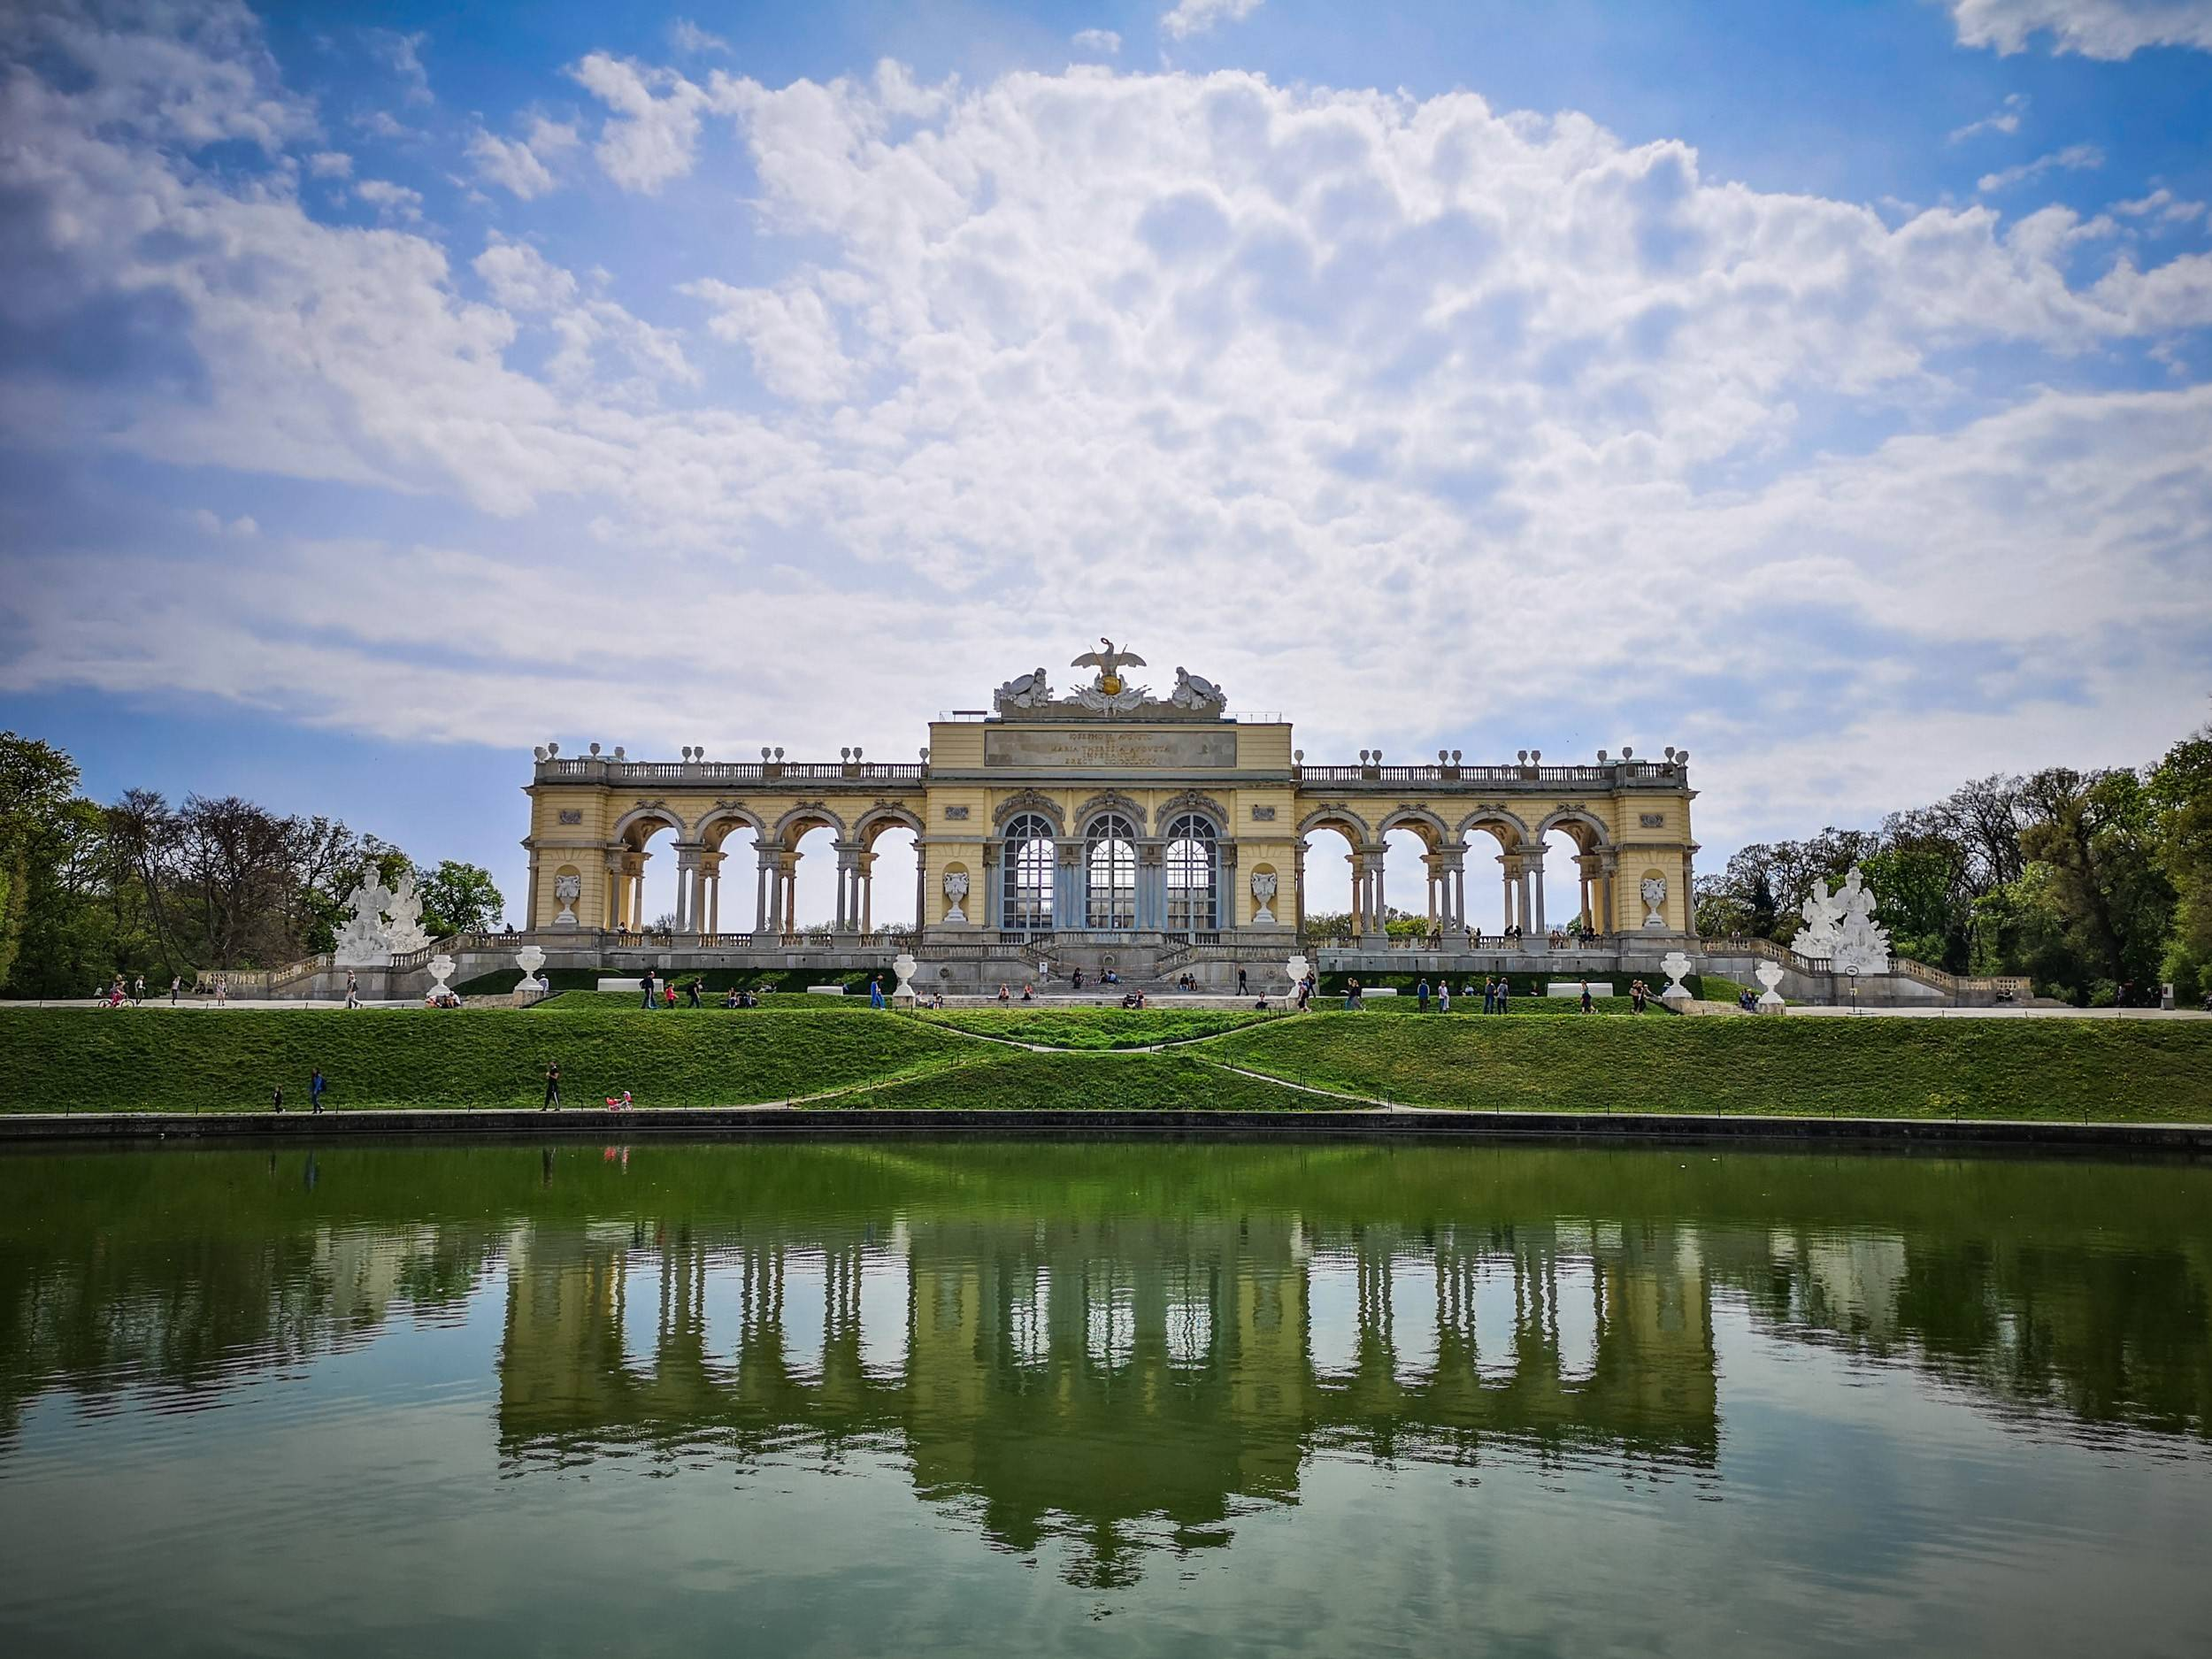 The Gloriette in Schönbrunn, Vienna